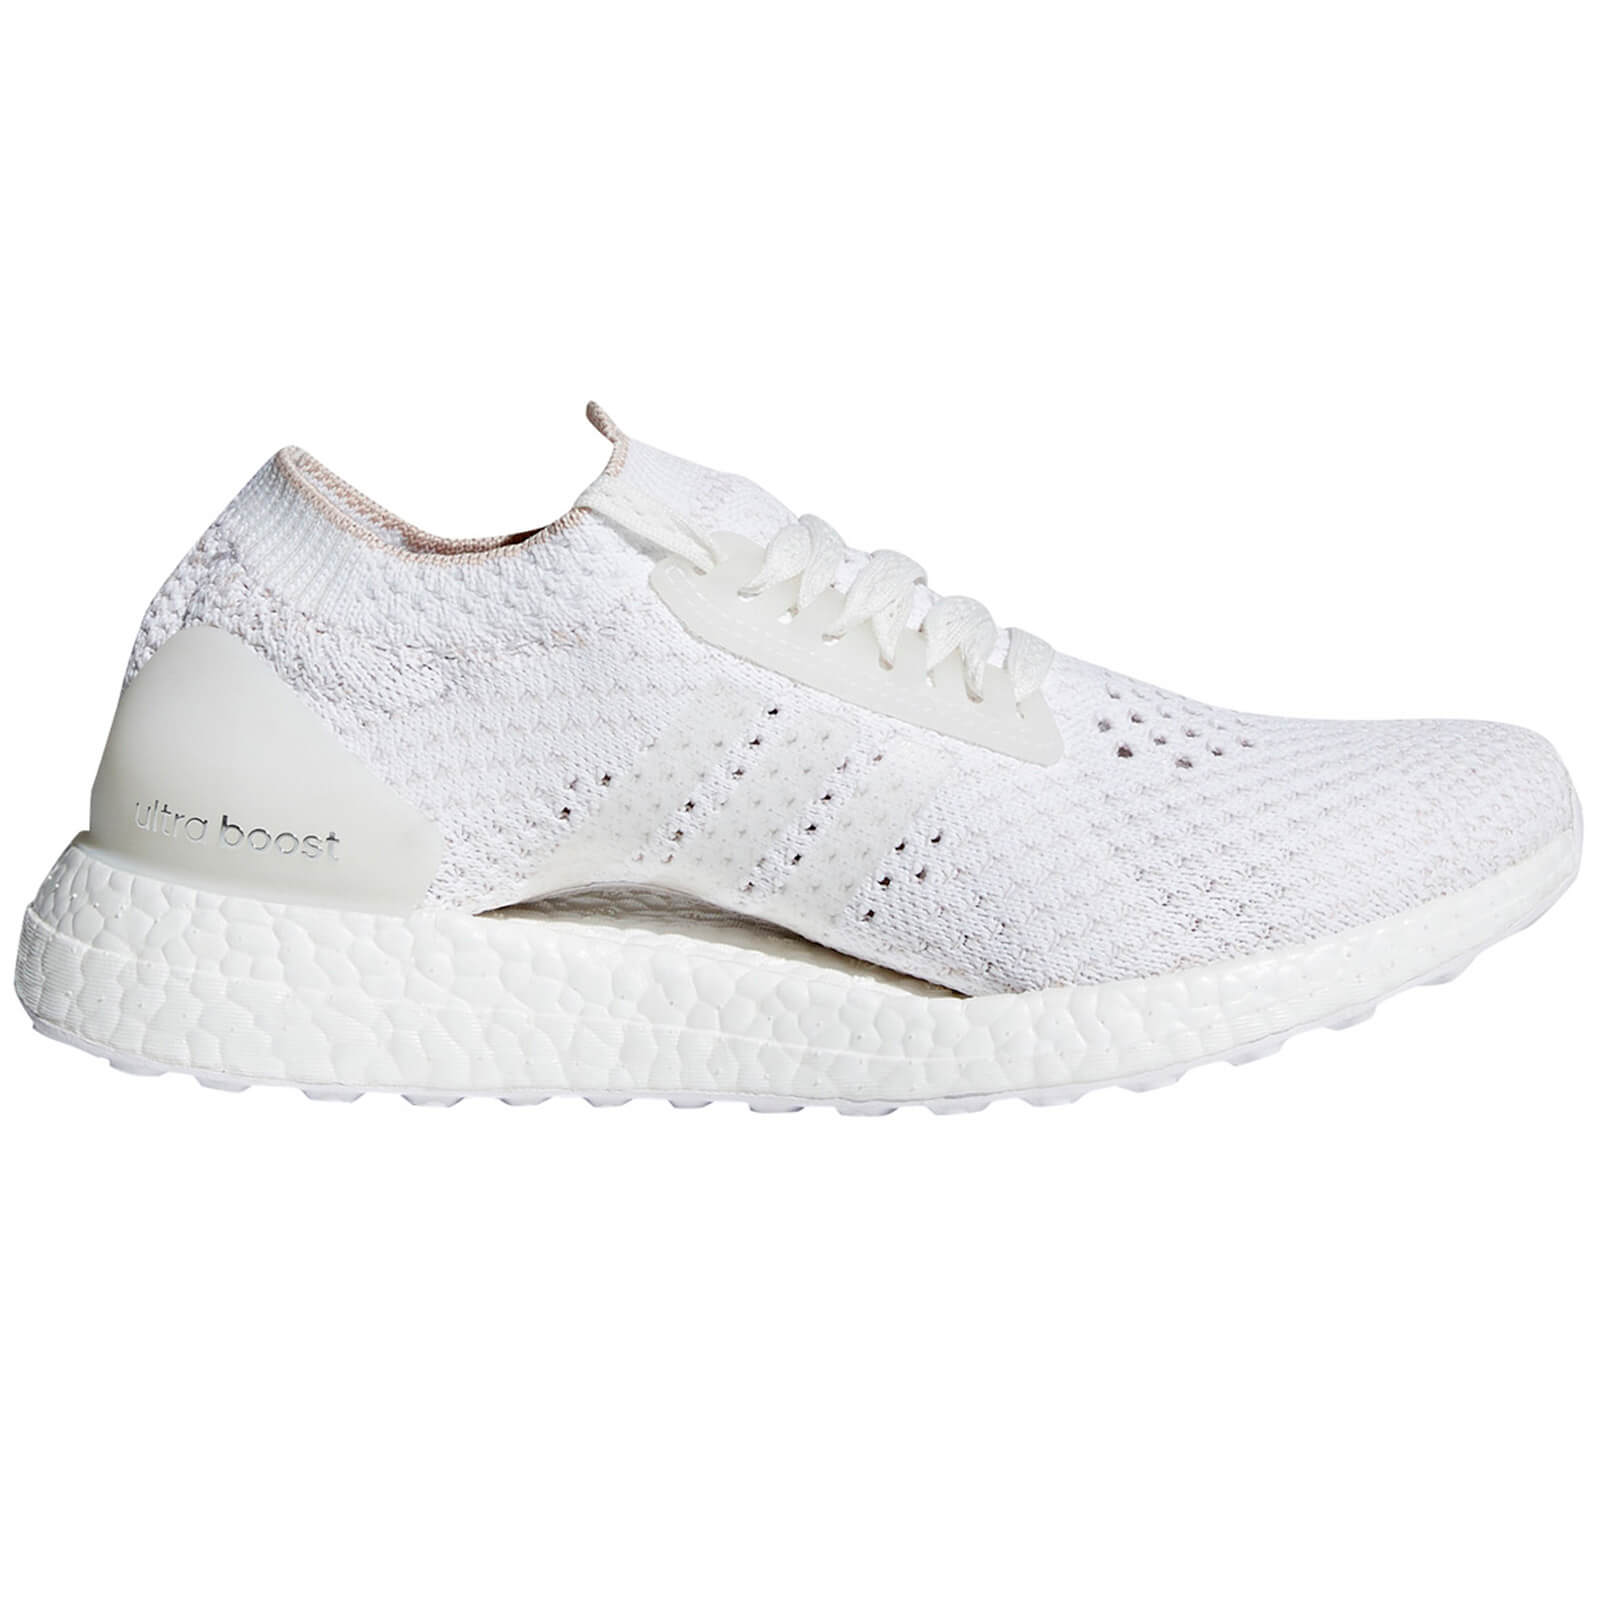 59bac96582127 adidas Women's Ultraboost X Clima Running Shoes - White